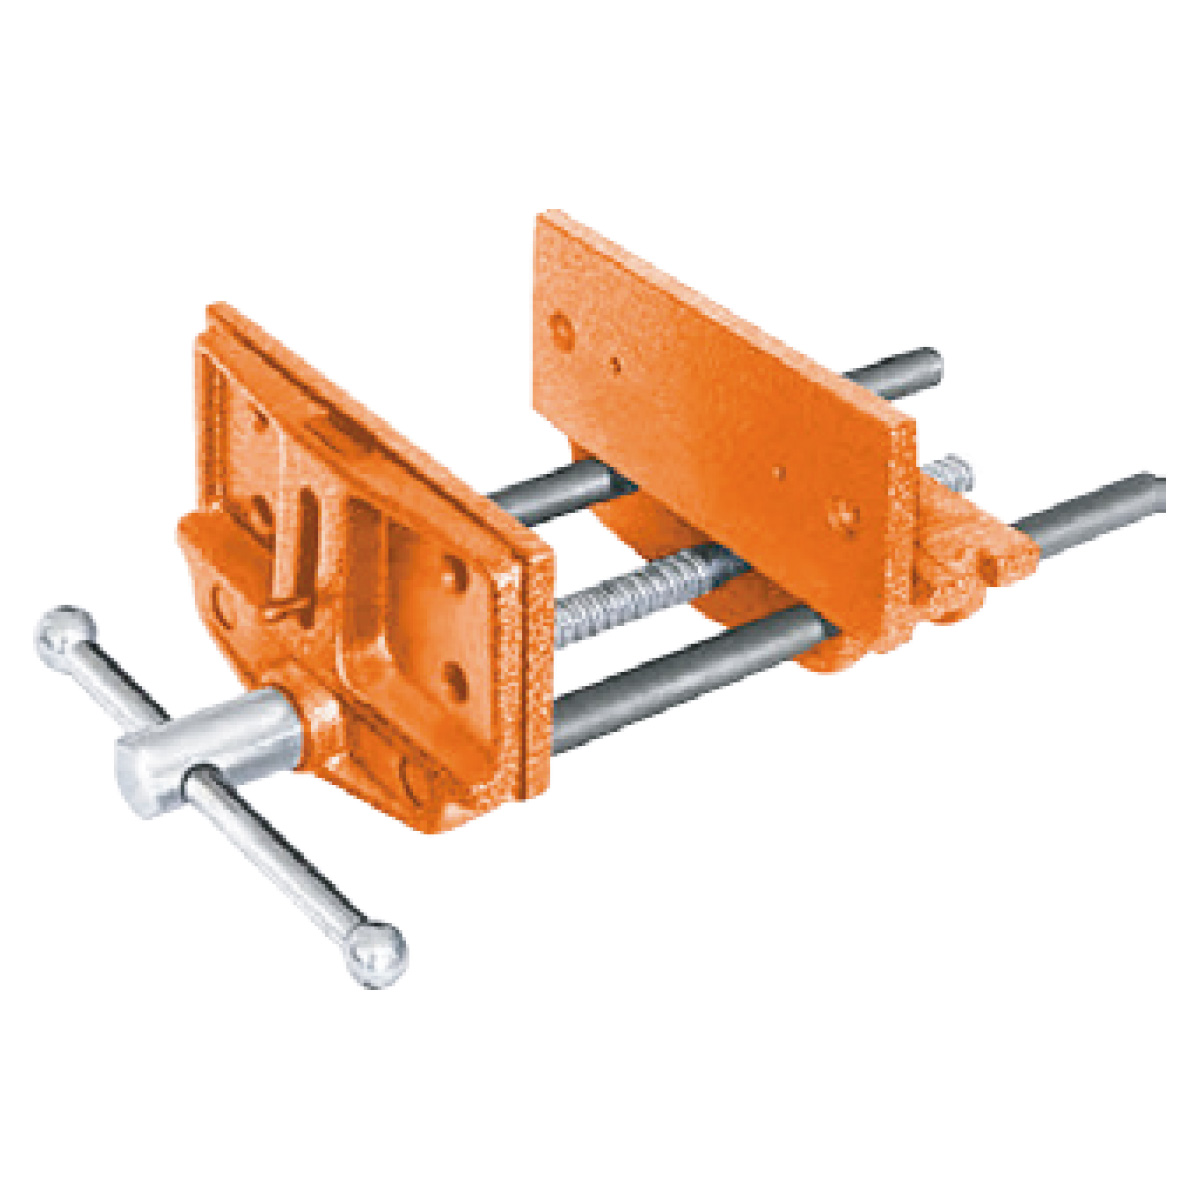 ORDINARY TYPE WOODWORKING VISE